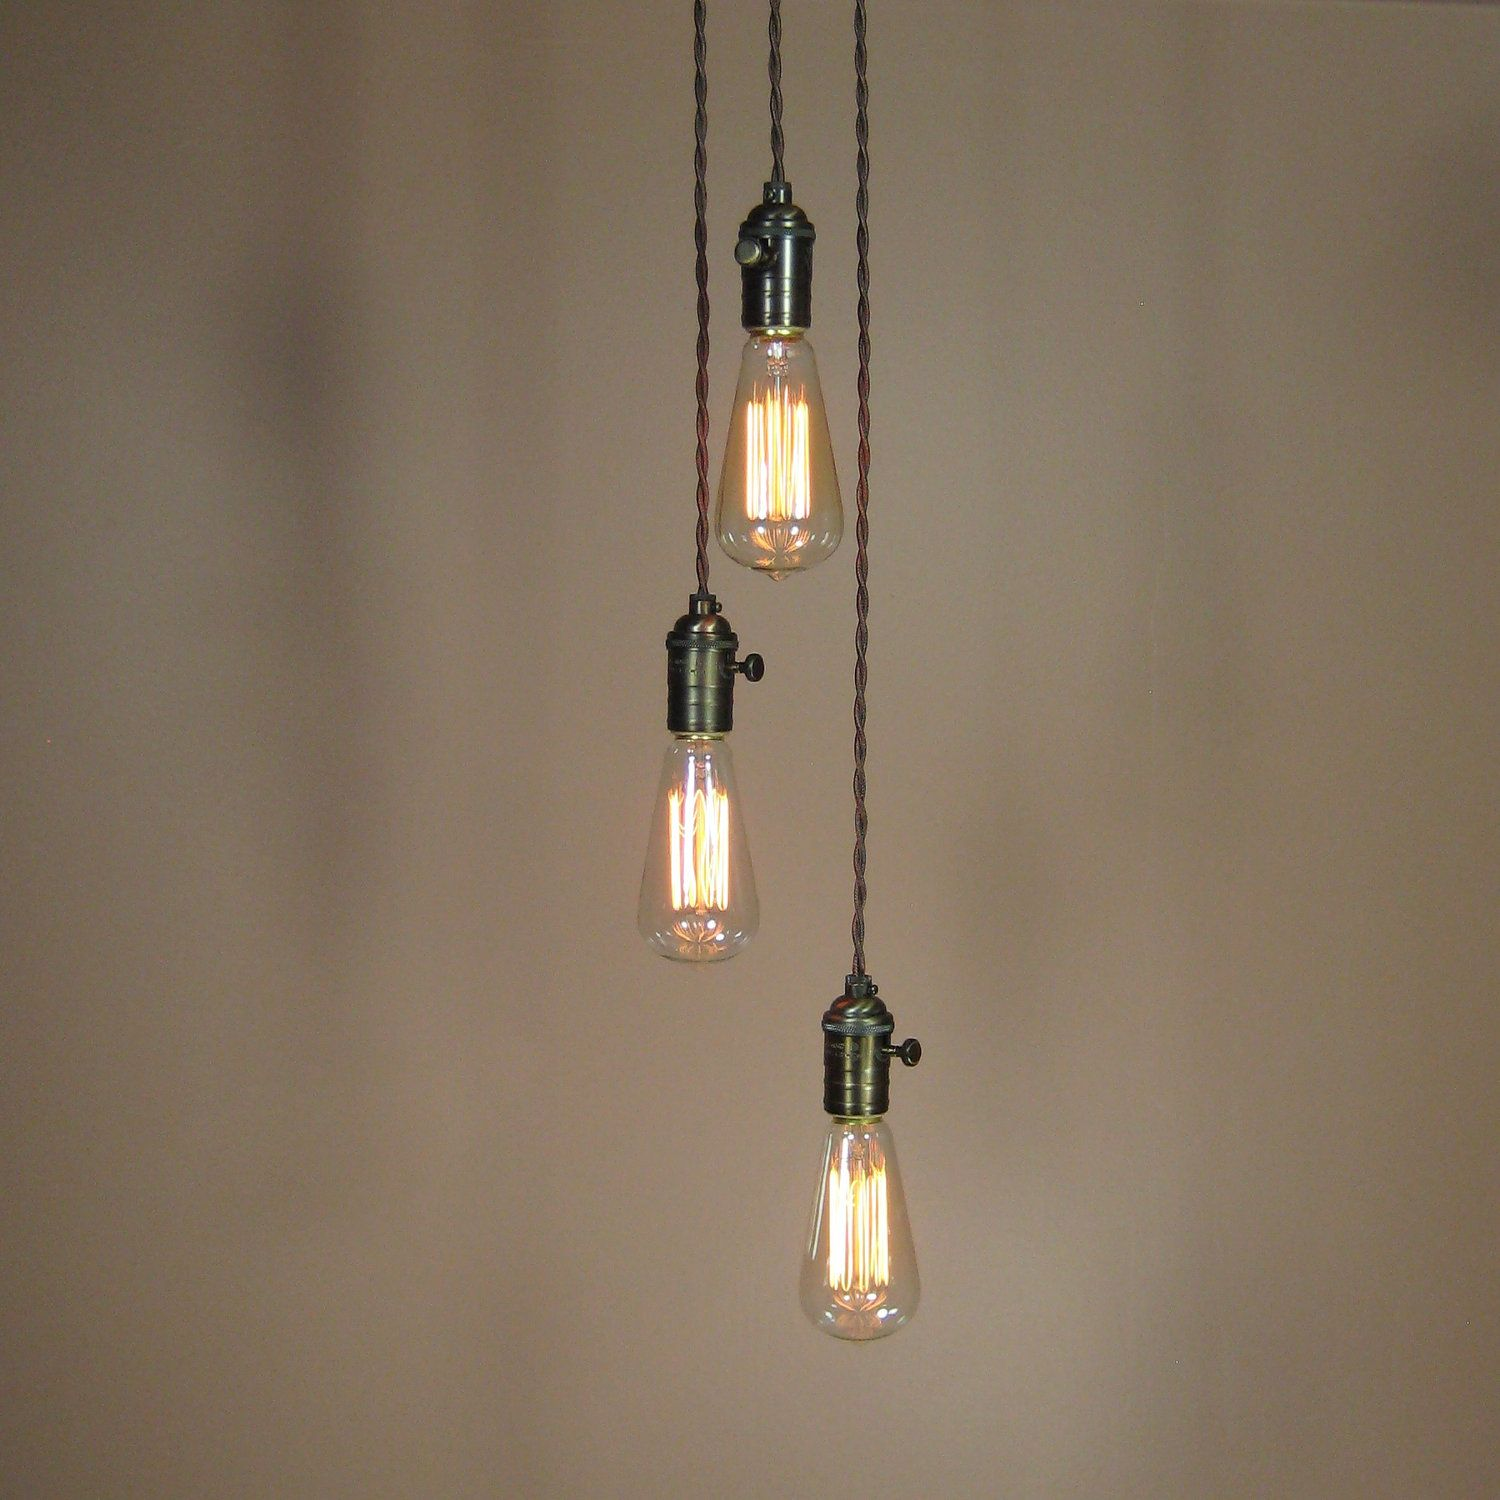 com plumen efficient pendant with light and elegant pin plume grey bulb lighting in glass energy smoke made